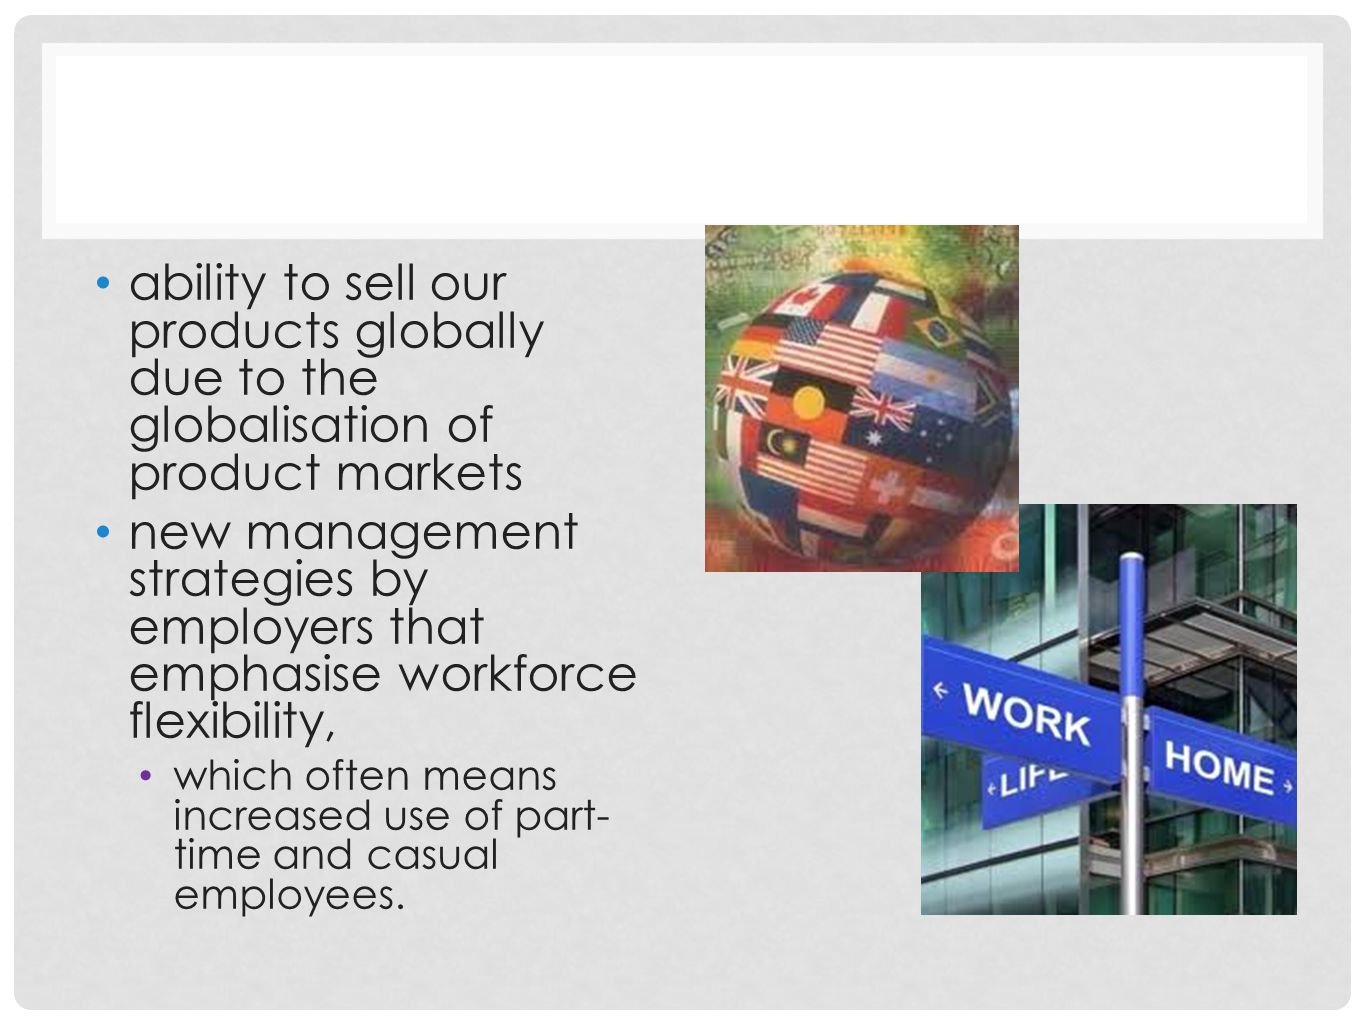 ability to sell our products globally due to the globalisation of product markets